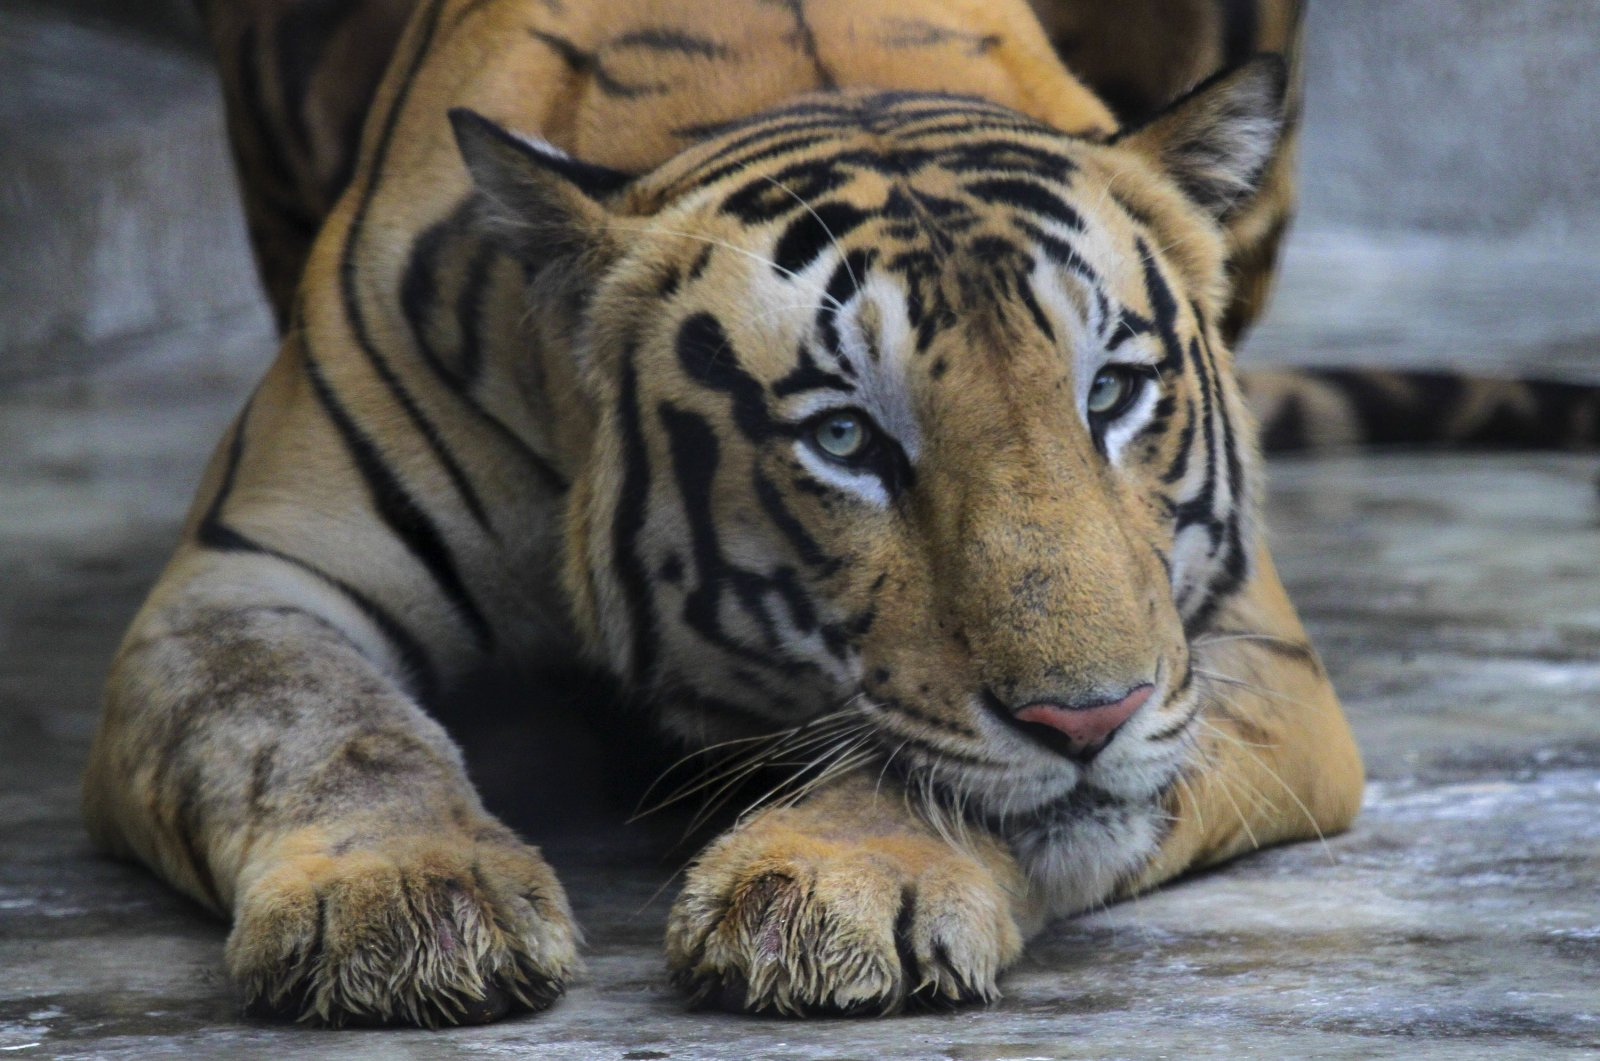 A Royal Bengal tiger rests at its enclosure at the Alipore zoo in Kolkata, India, July 29, 2019. (AP Photo)